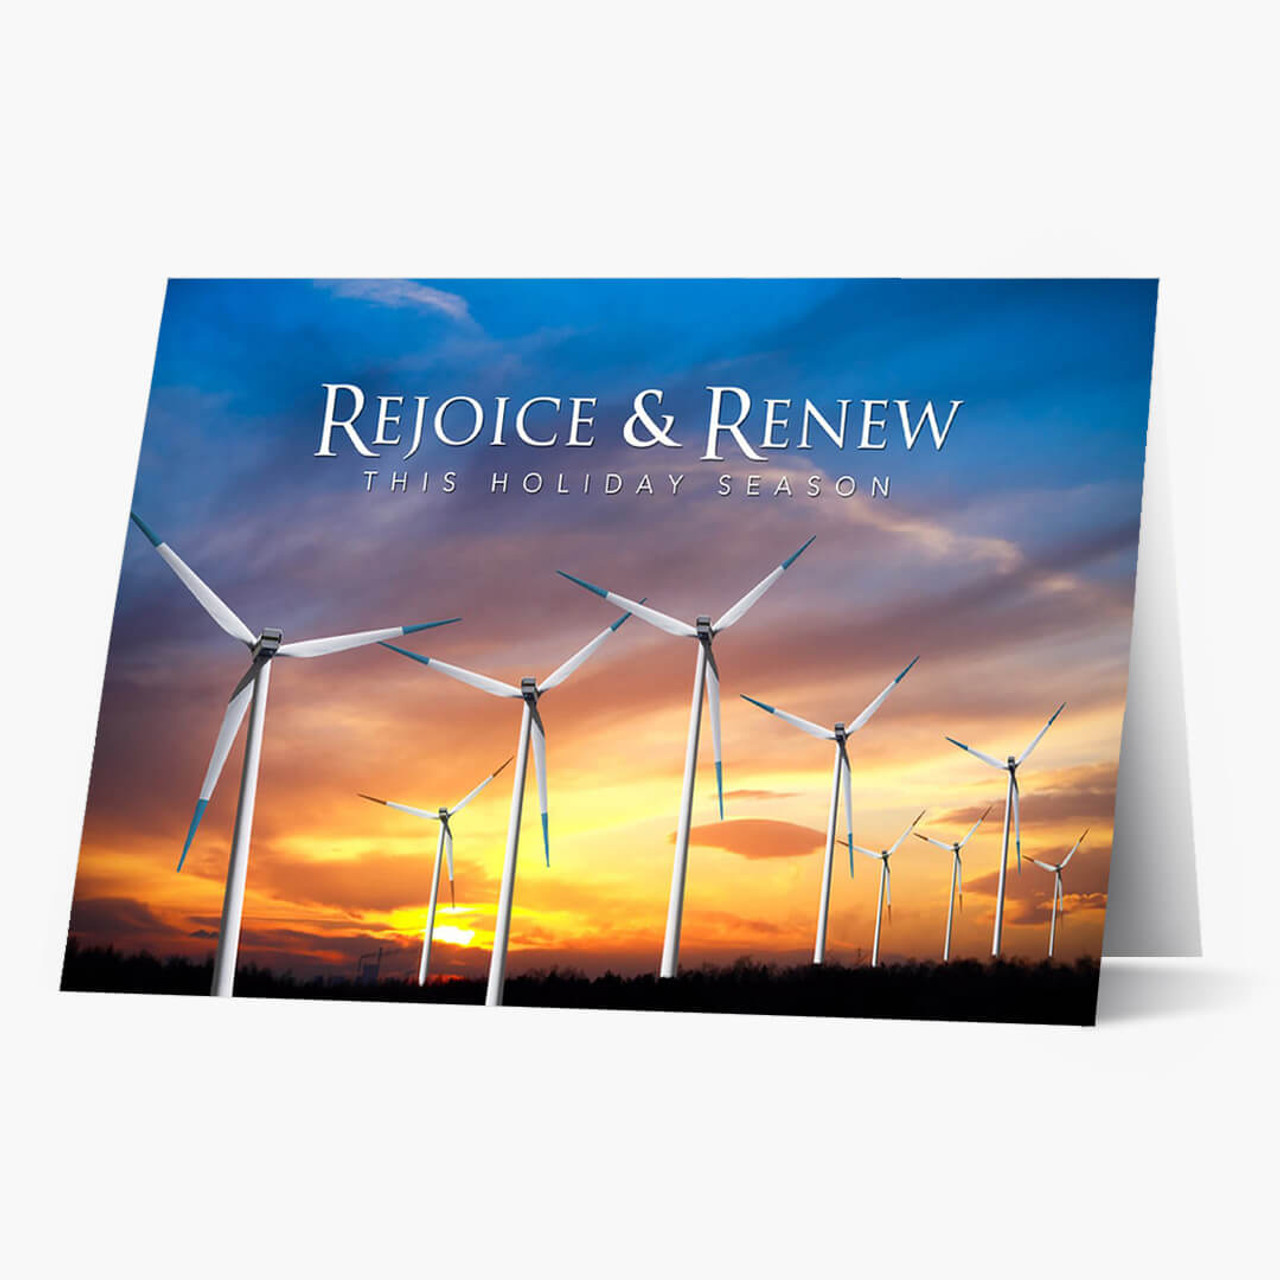 Rejoice and Renew Christmas Card